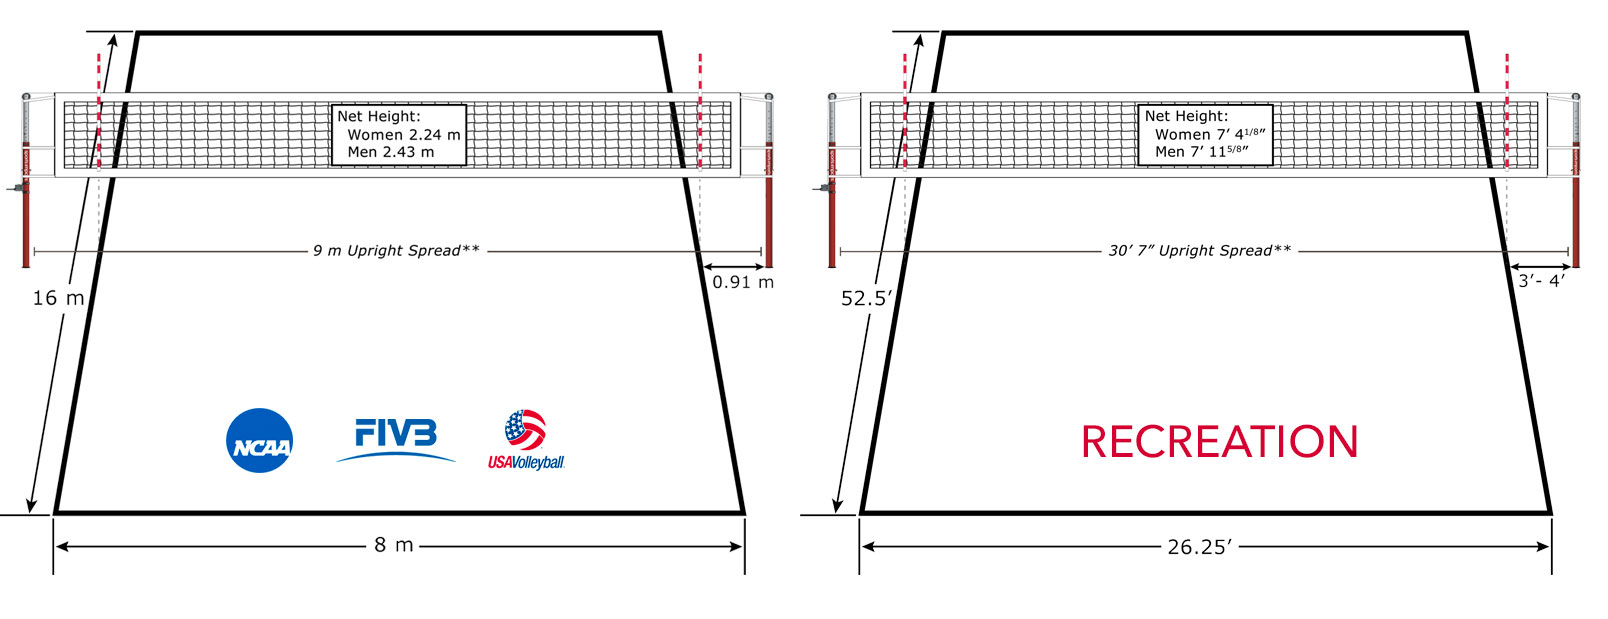 Volleyball Court Dimensions Sports Imports